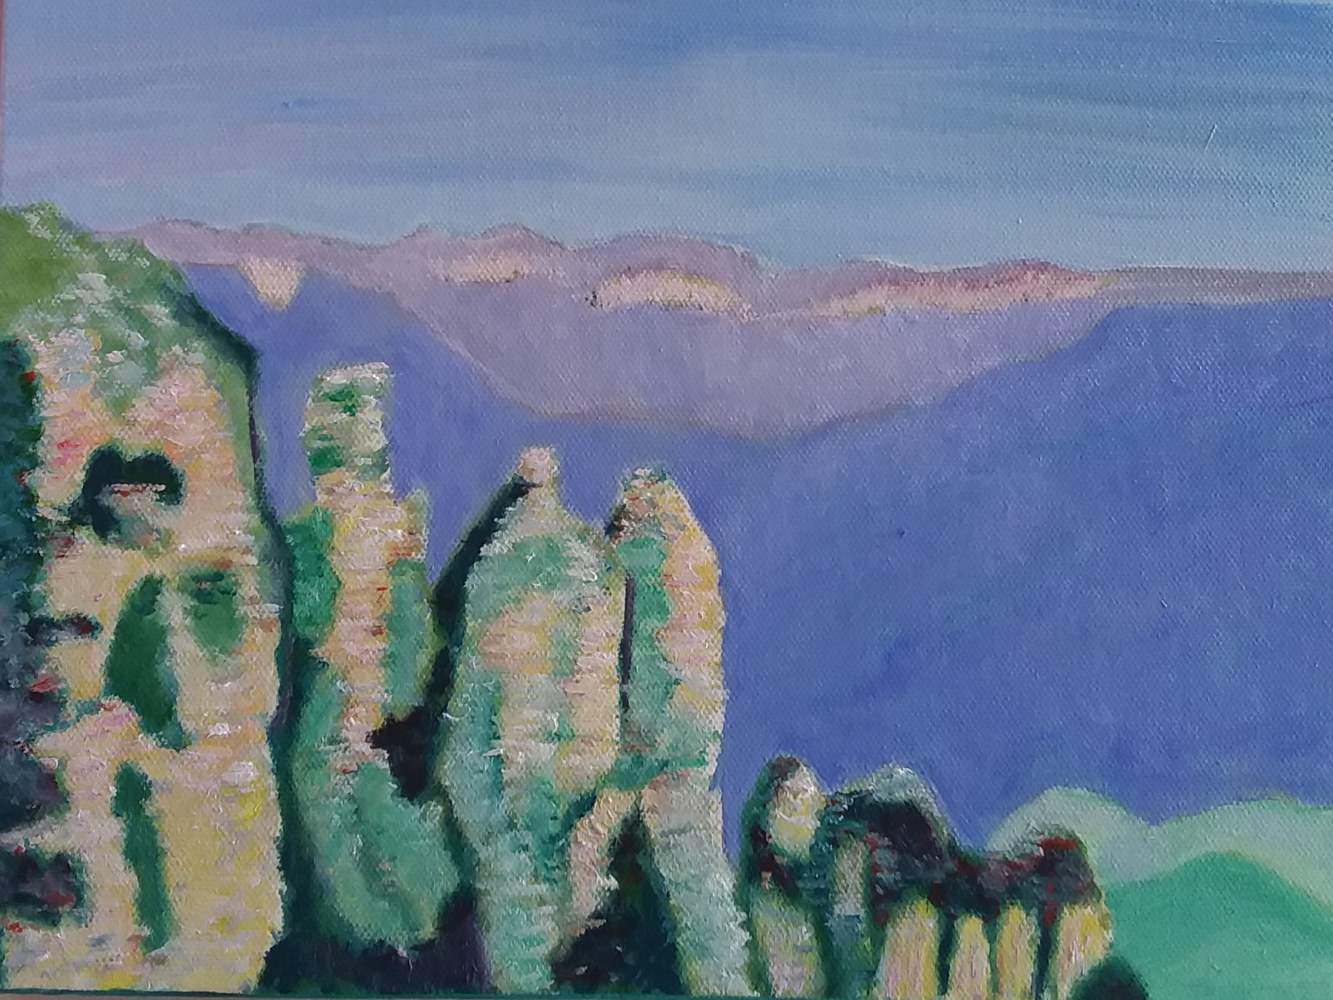 Oil painting The Three Sisters, Blue Mountains, Katoomba, NSW by Gwenda Branjerdporn